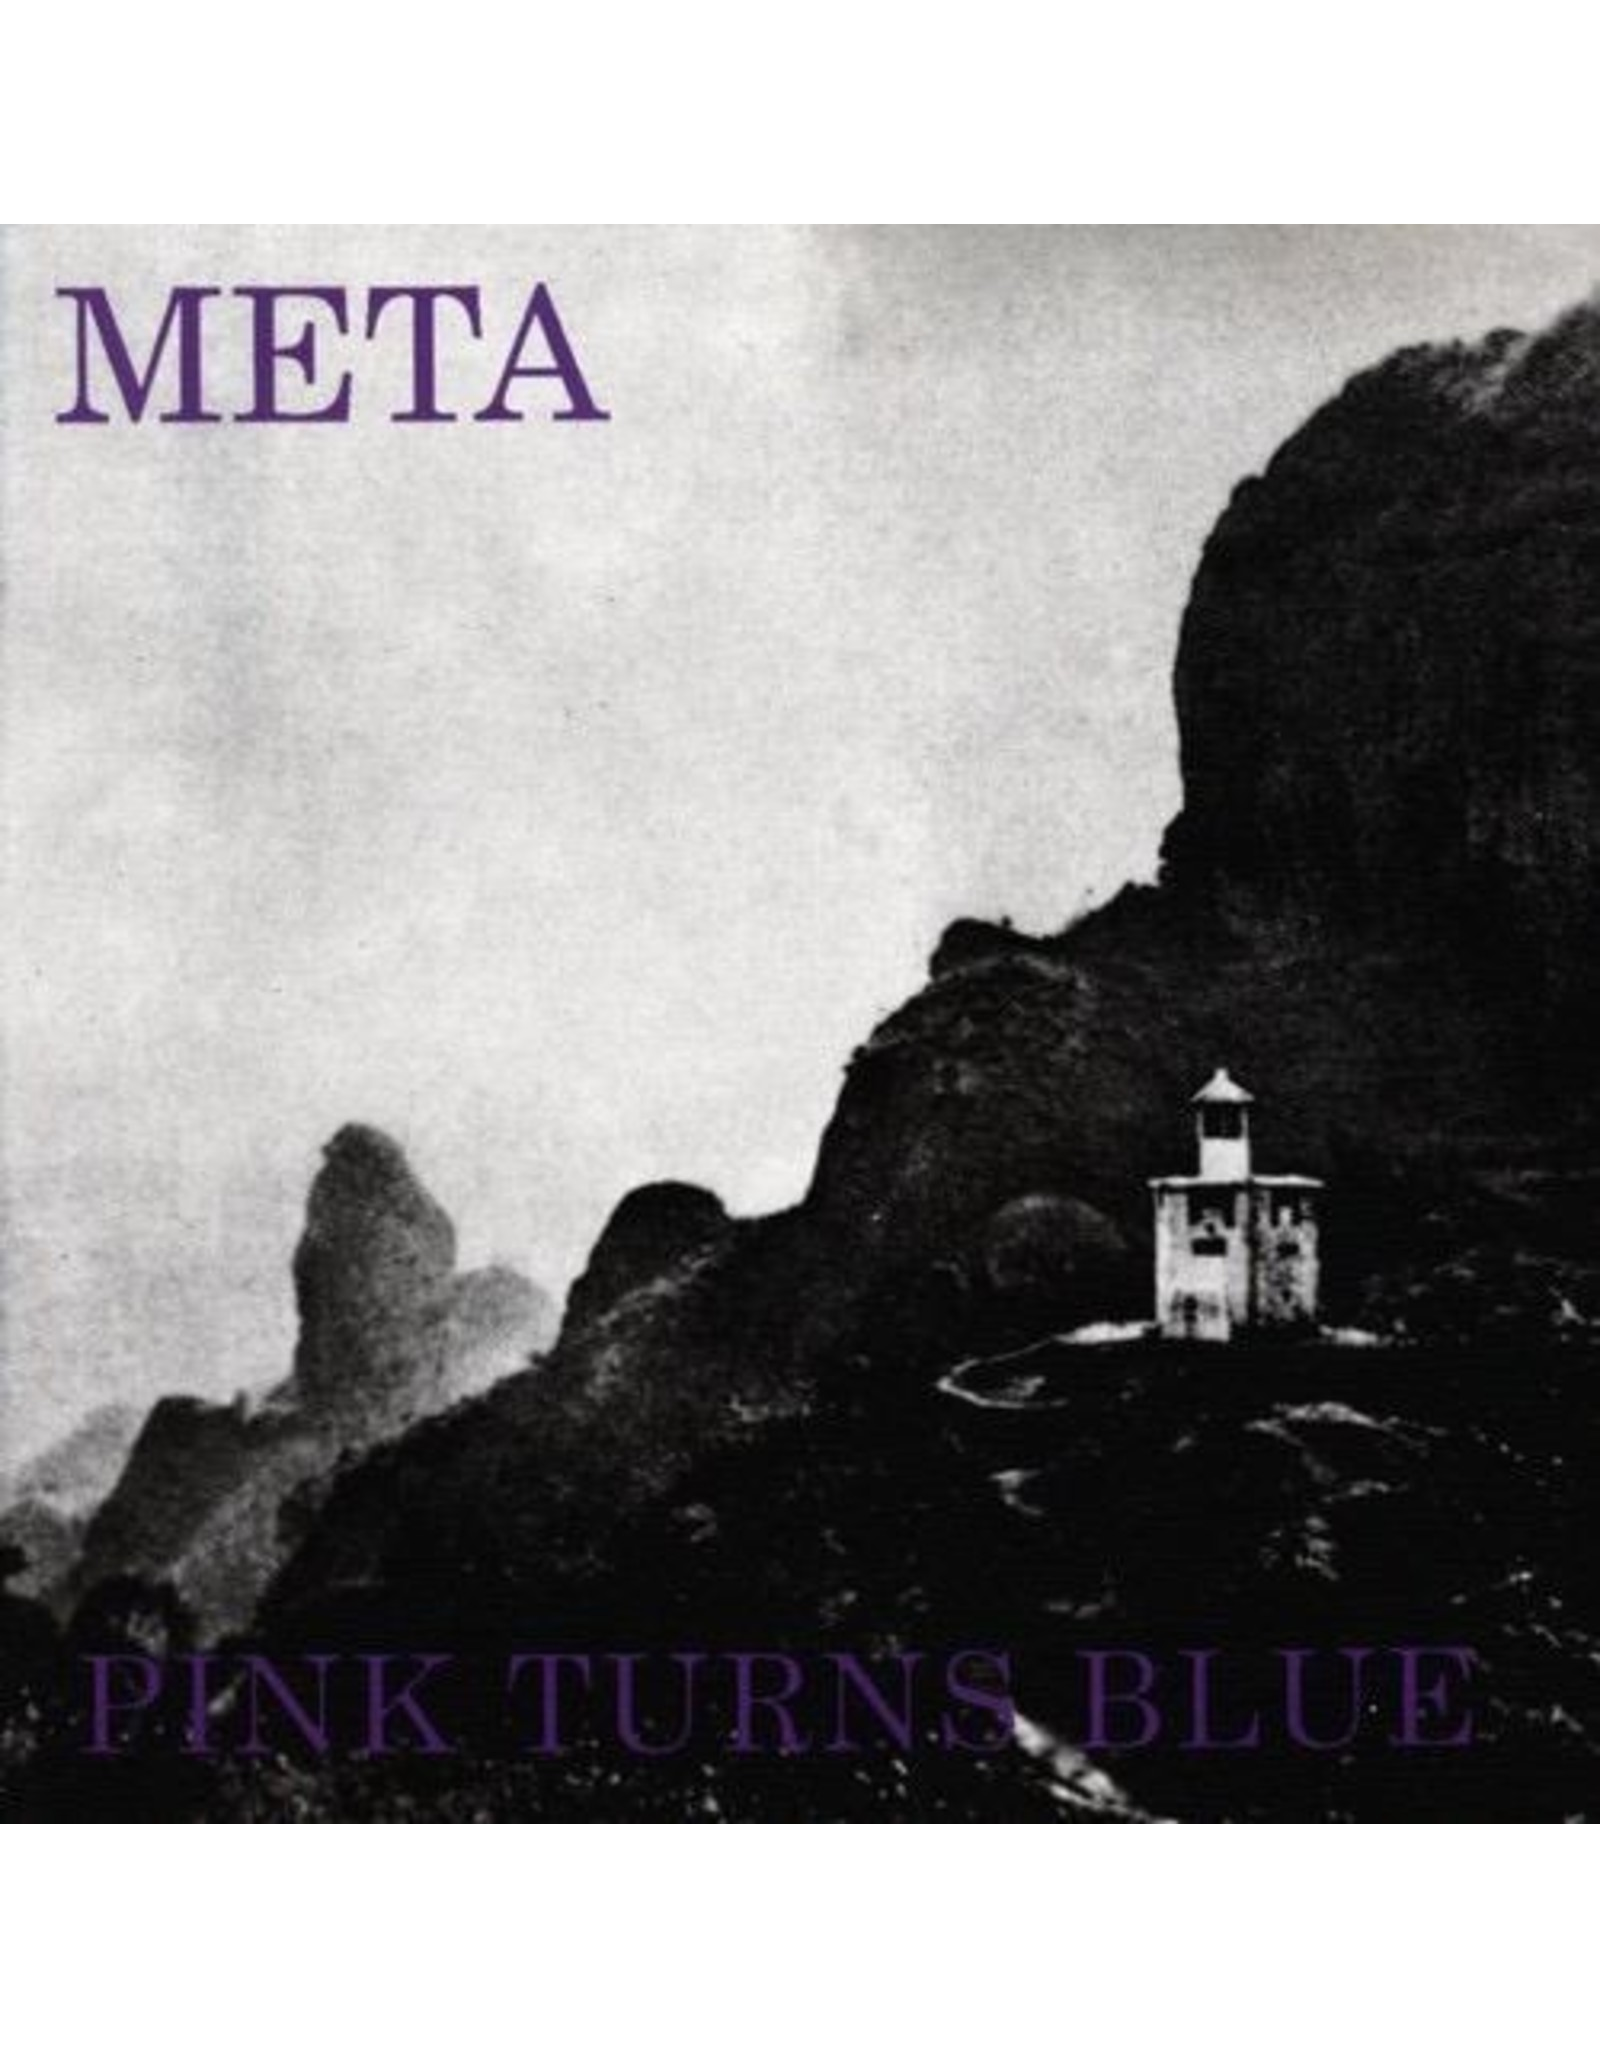 New Vinyl Pink Turns Blue - Meta LP